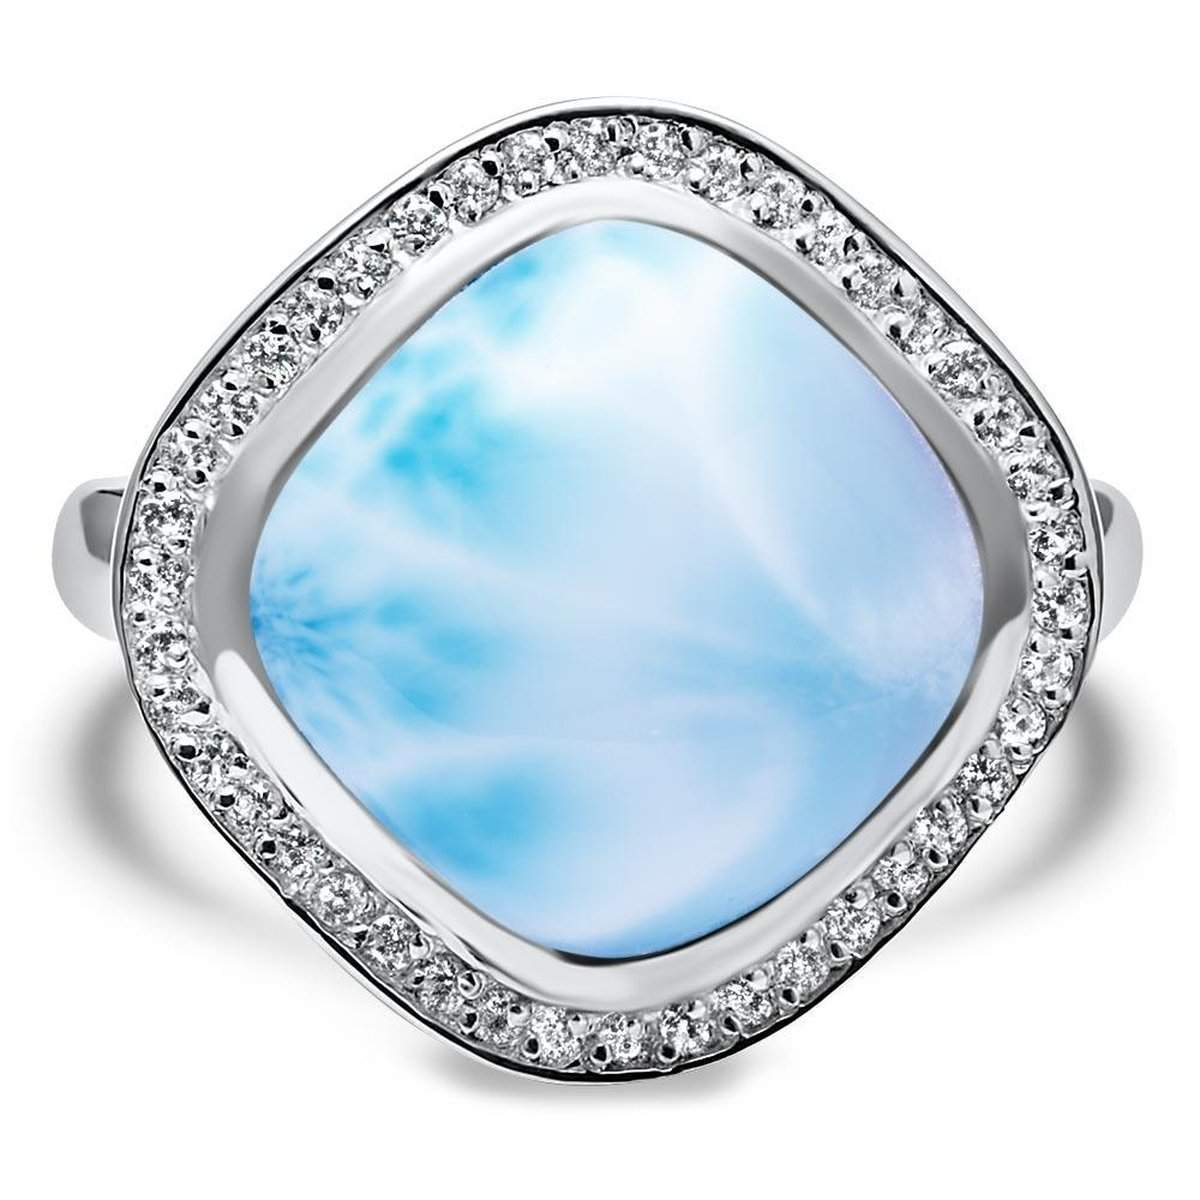 Clarity Cushion White Sapphire Ring - Rclar01-00-Marahlago Larimar-Renee Taylor Gallery